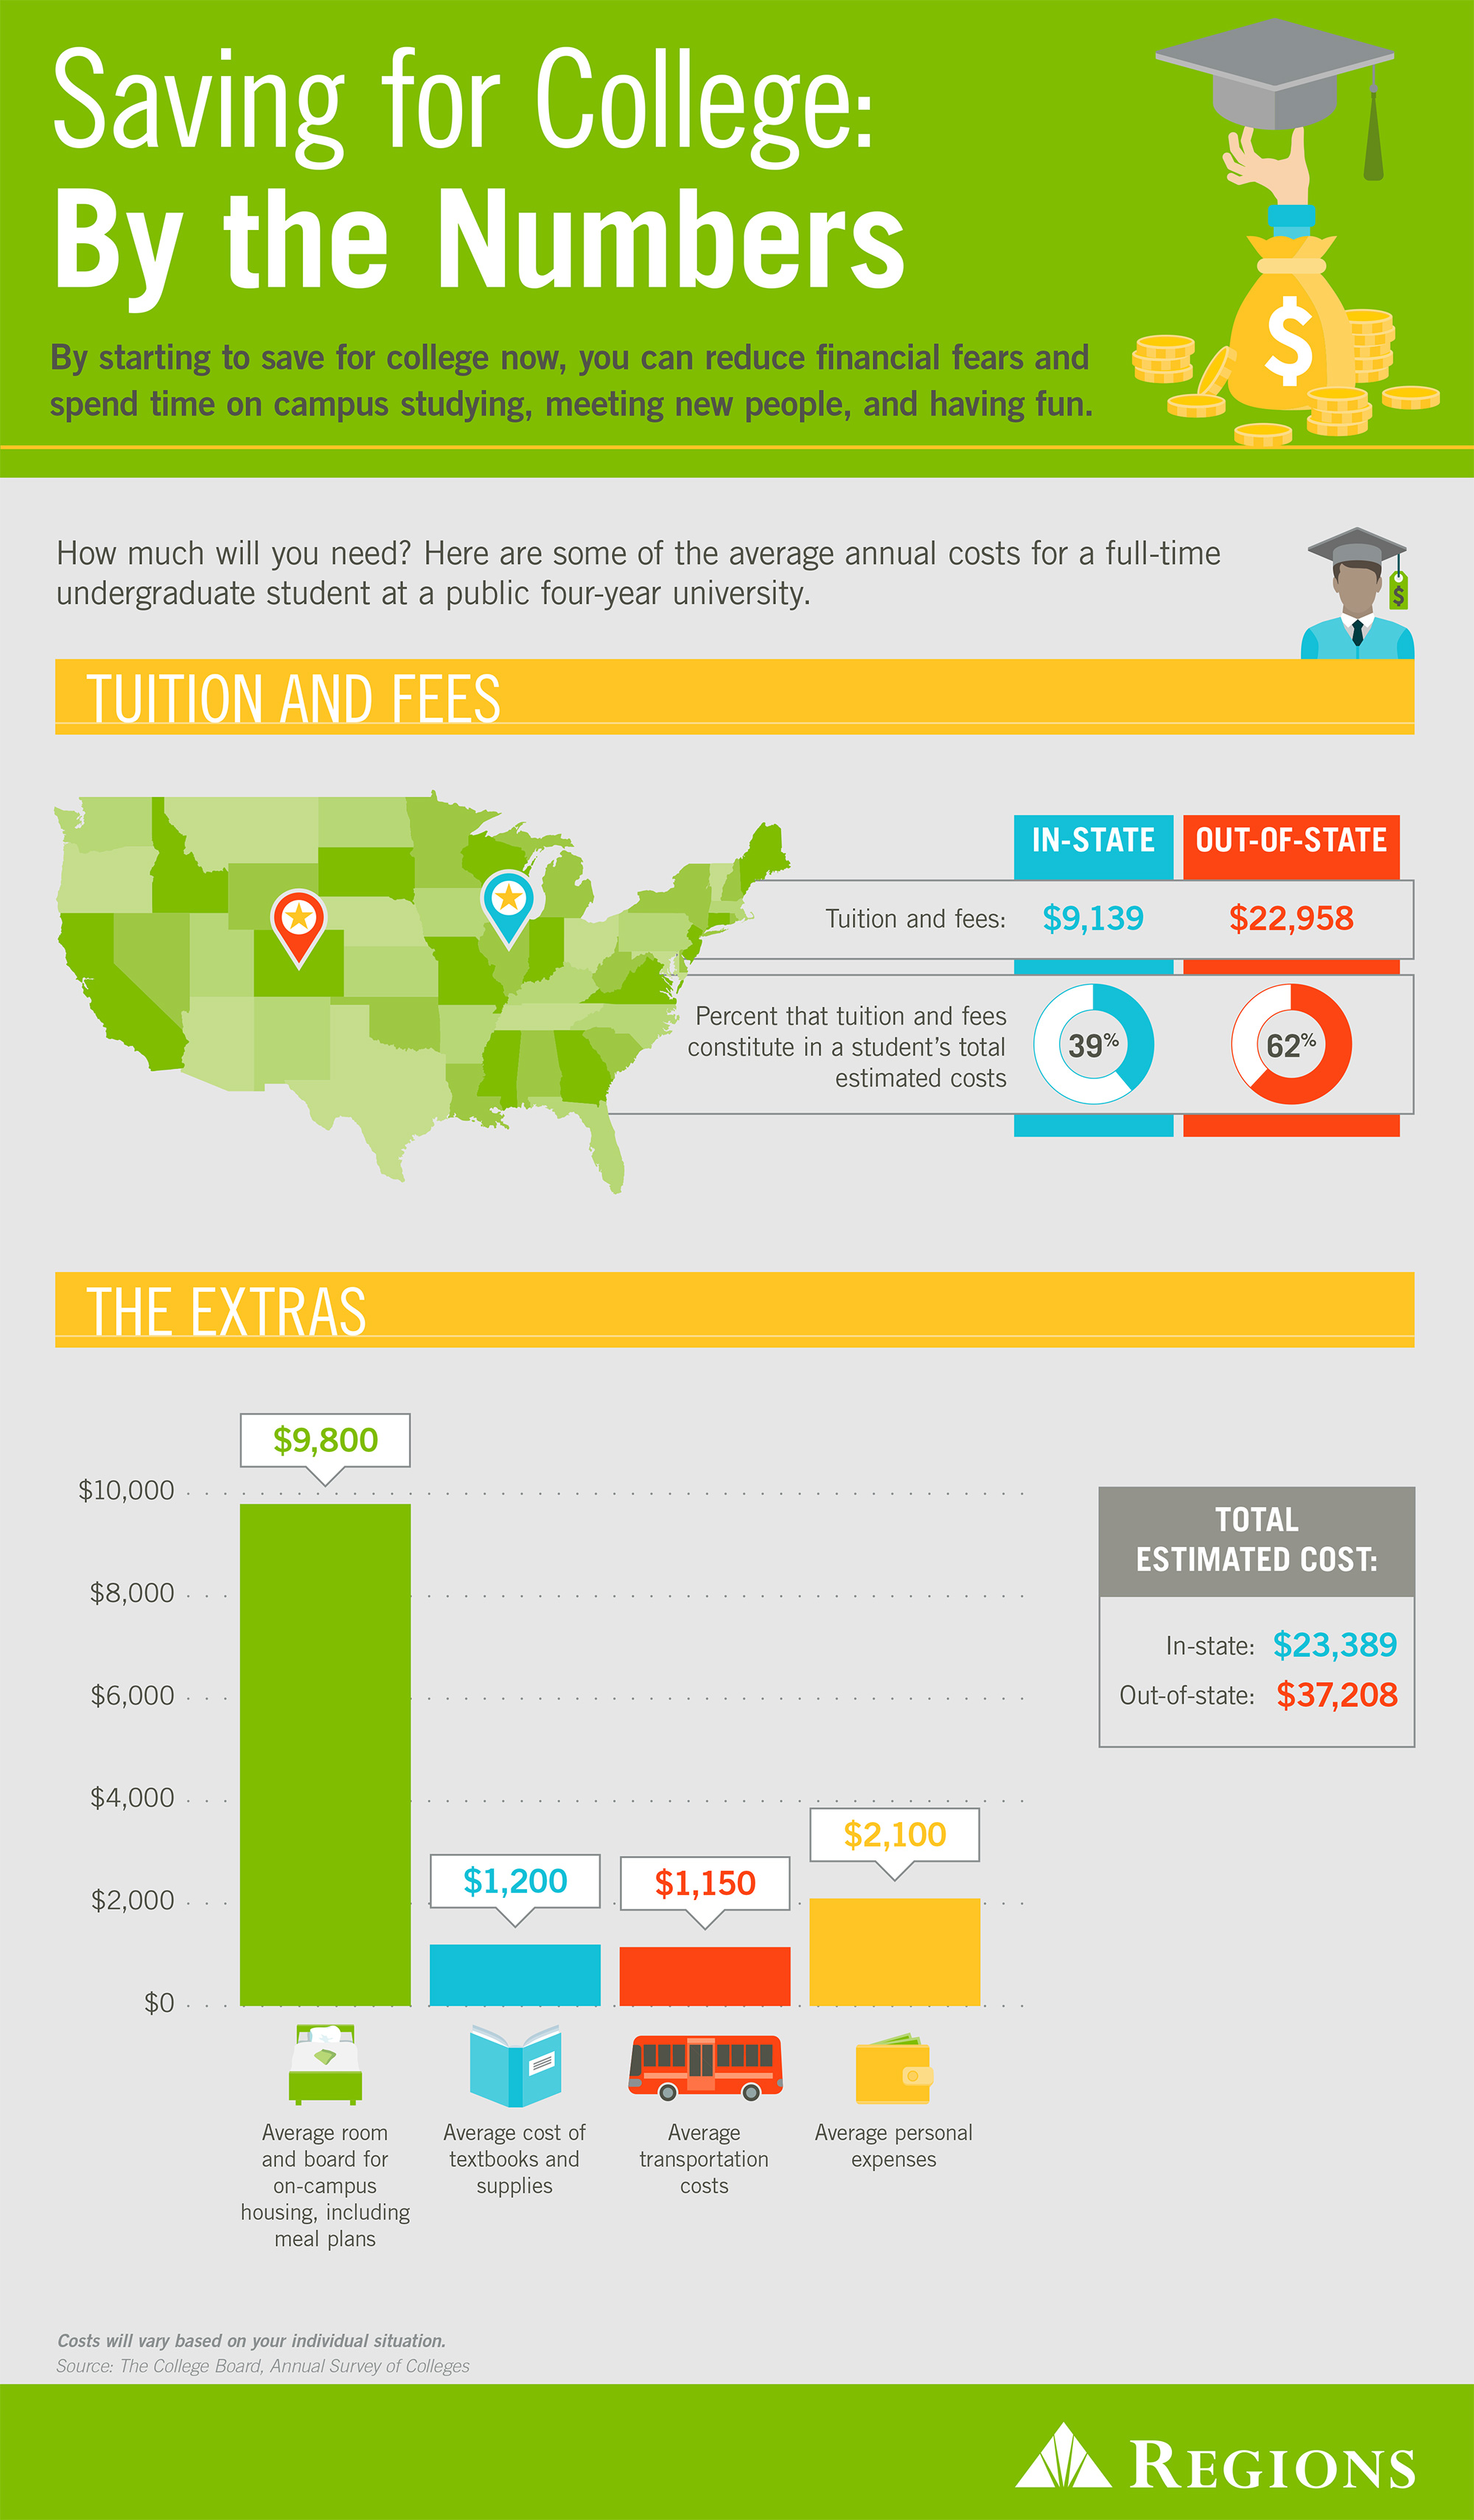 Save for College by the Numbers Infographic